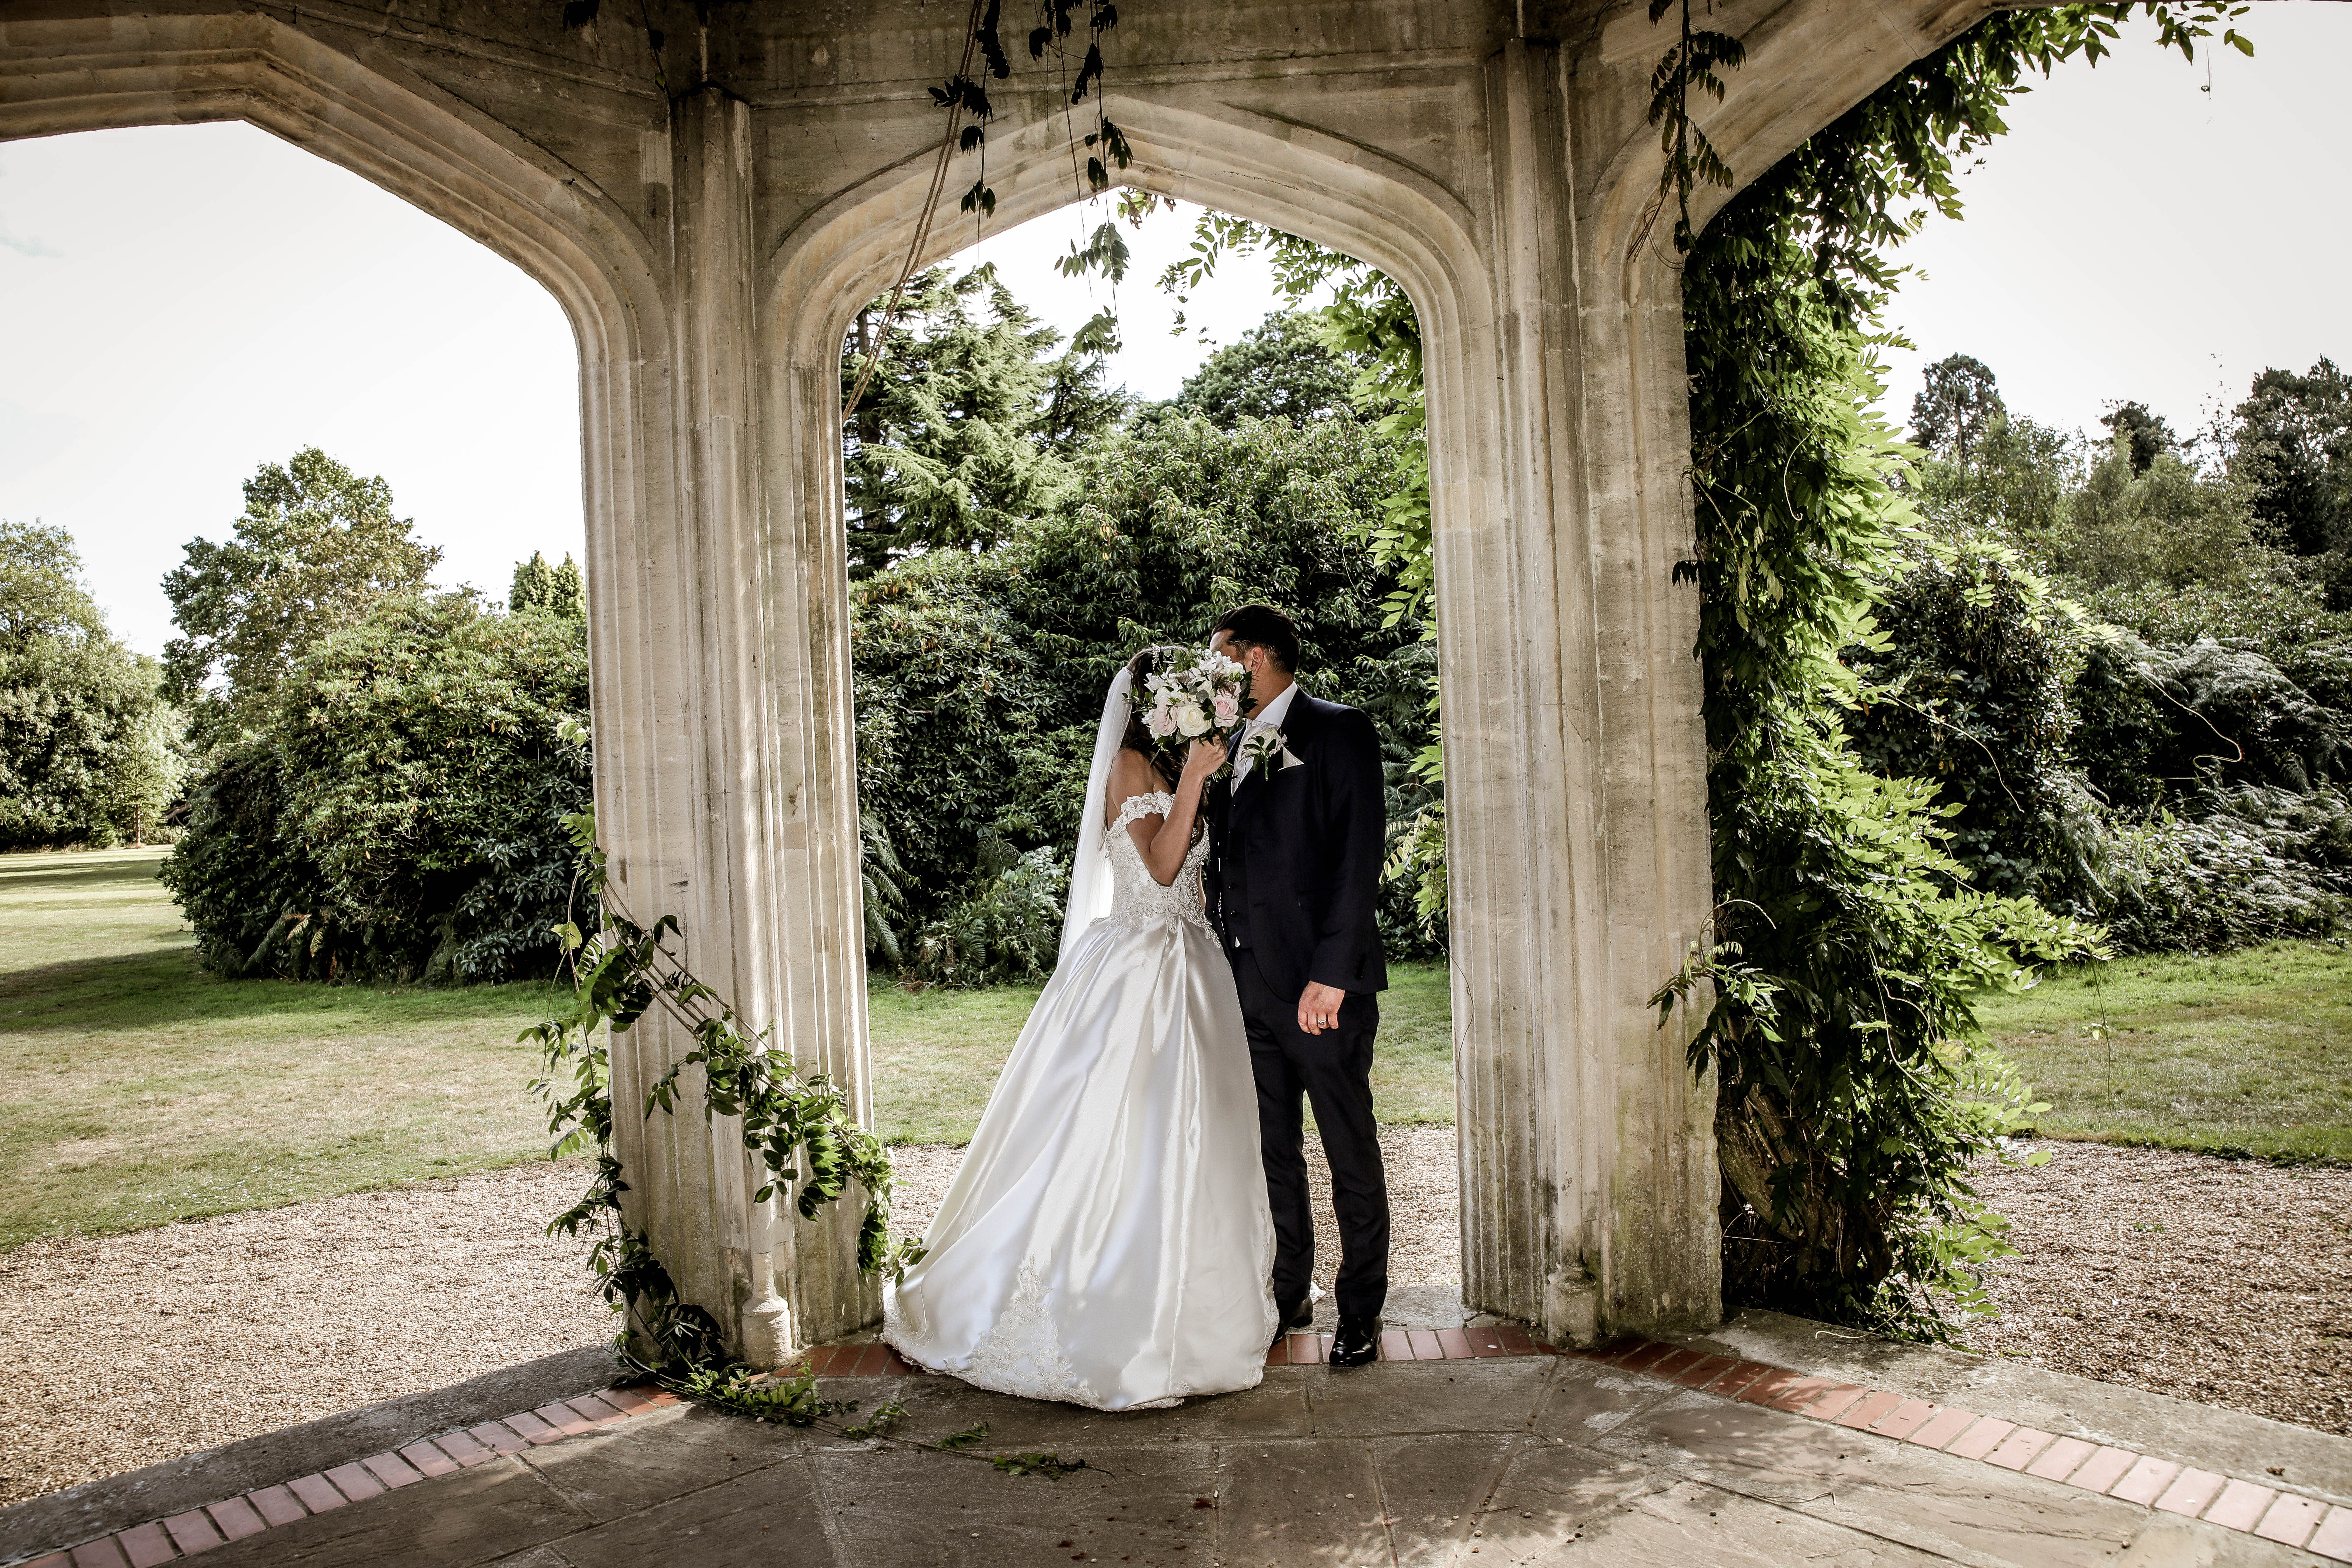 ArtbyClaire Wedding Photography at Shendish Manor